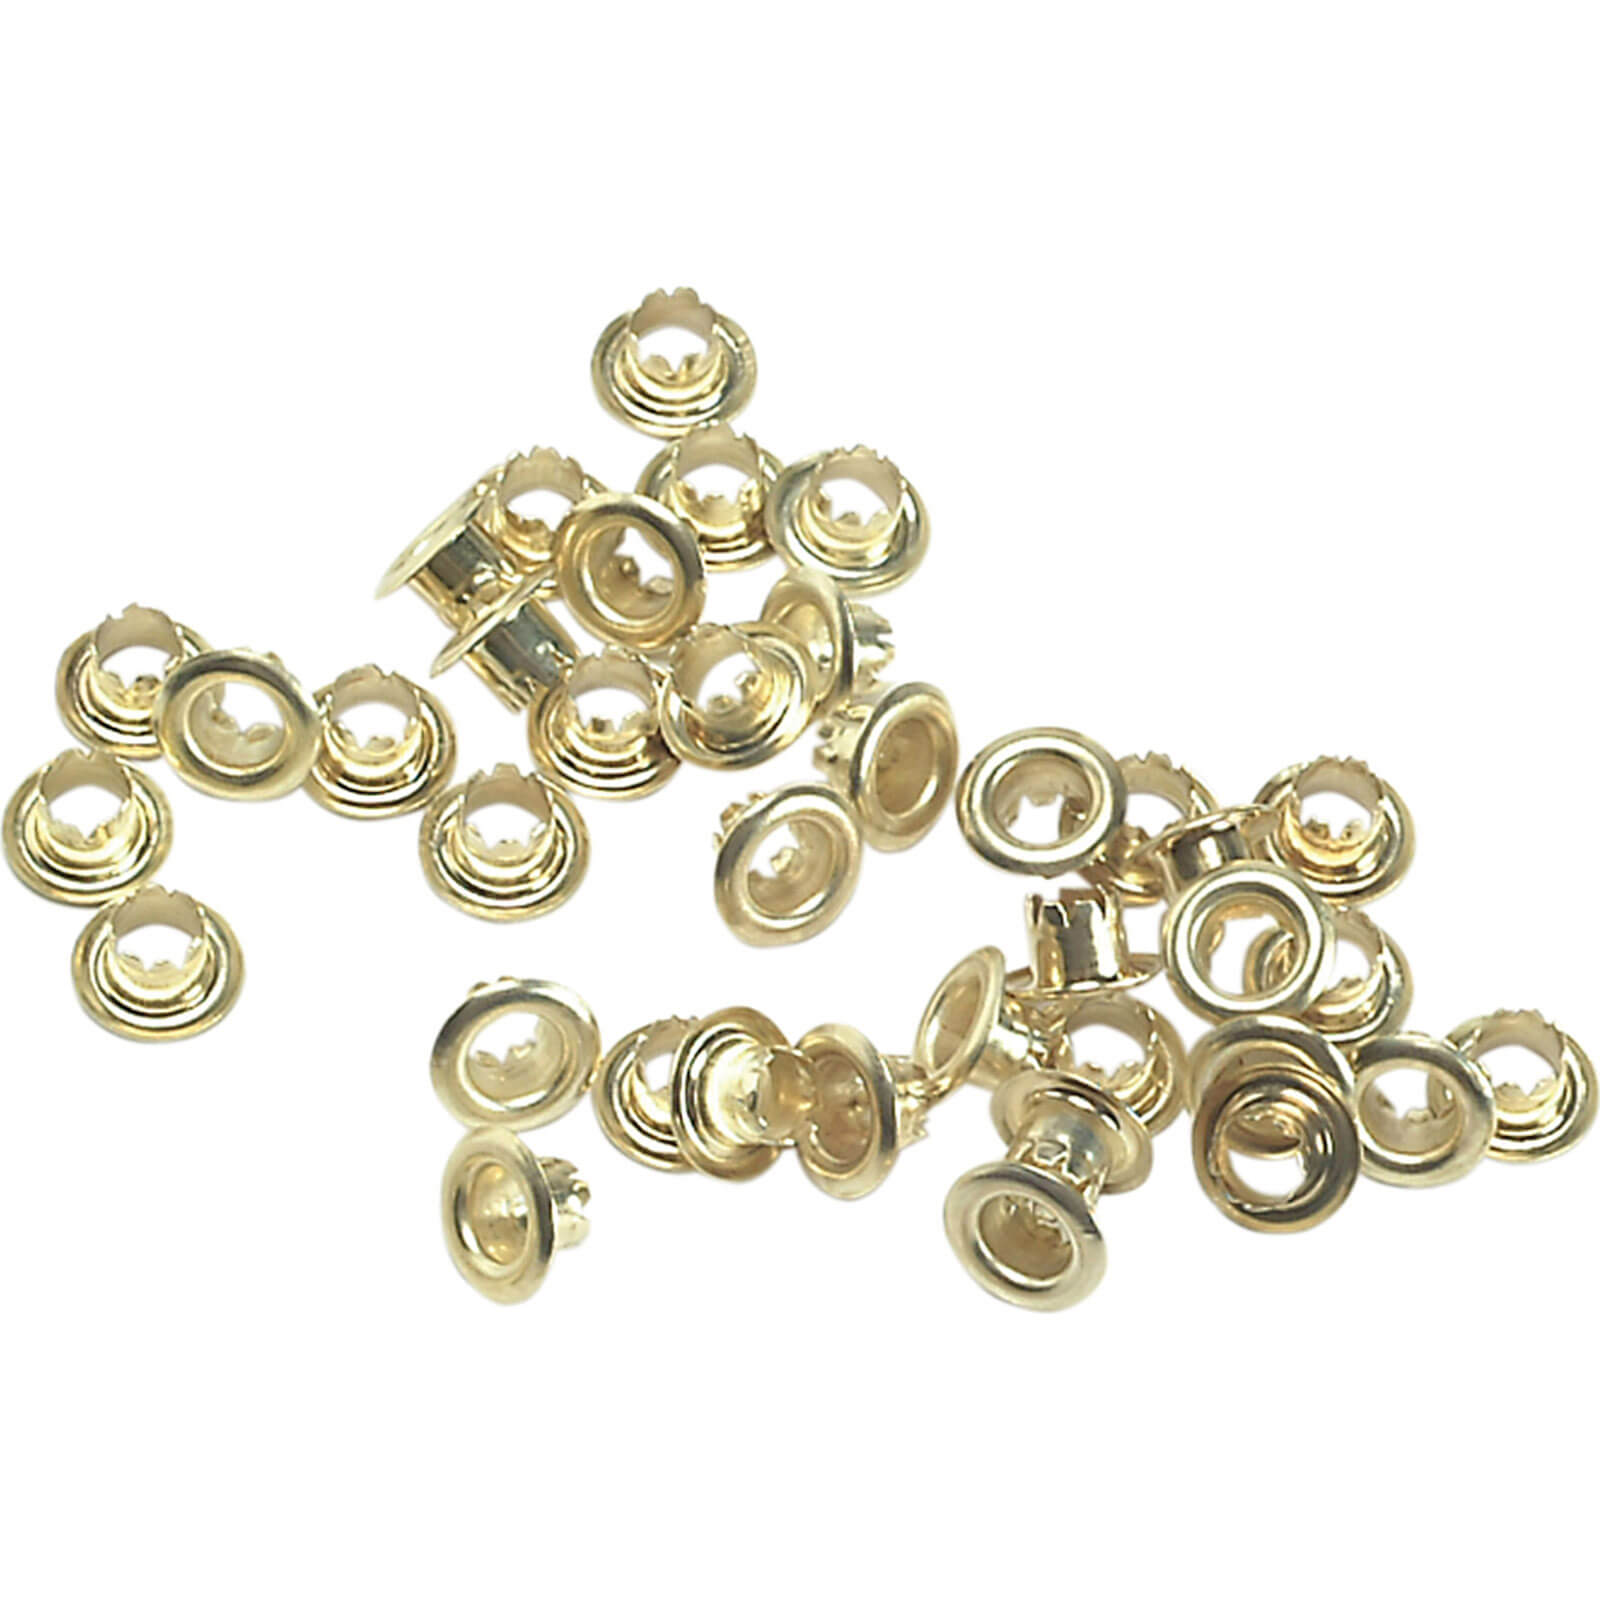 Image of Maun Eyelets 5.55mm Pack of 50